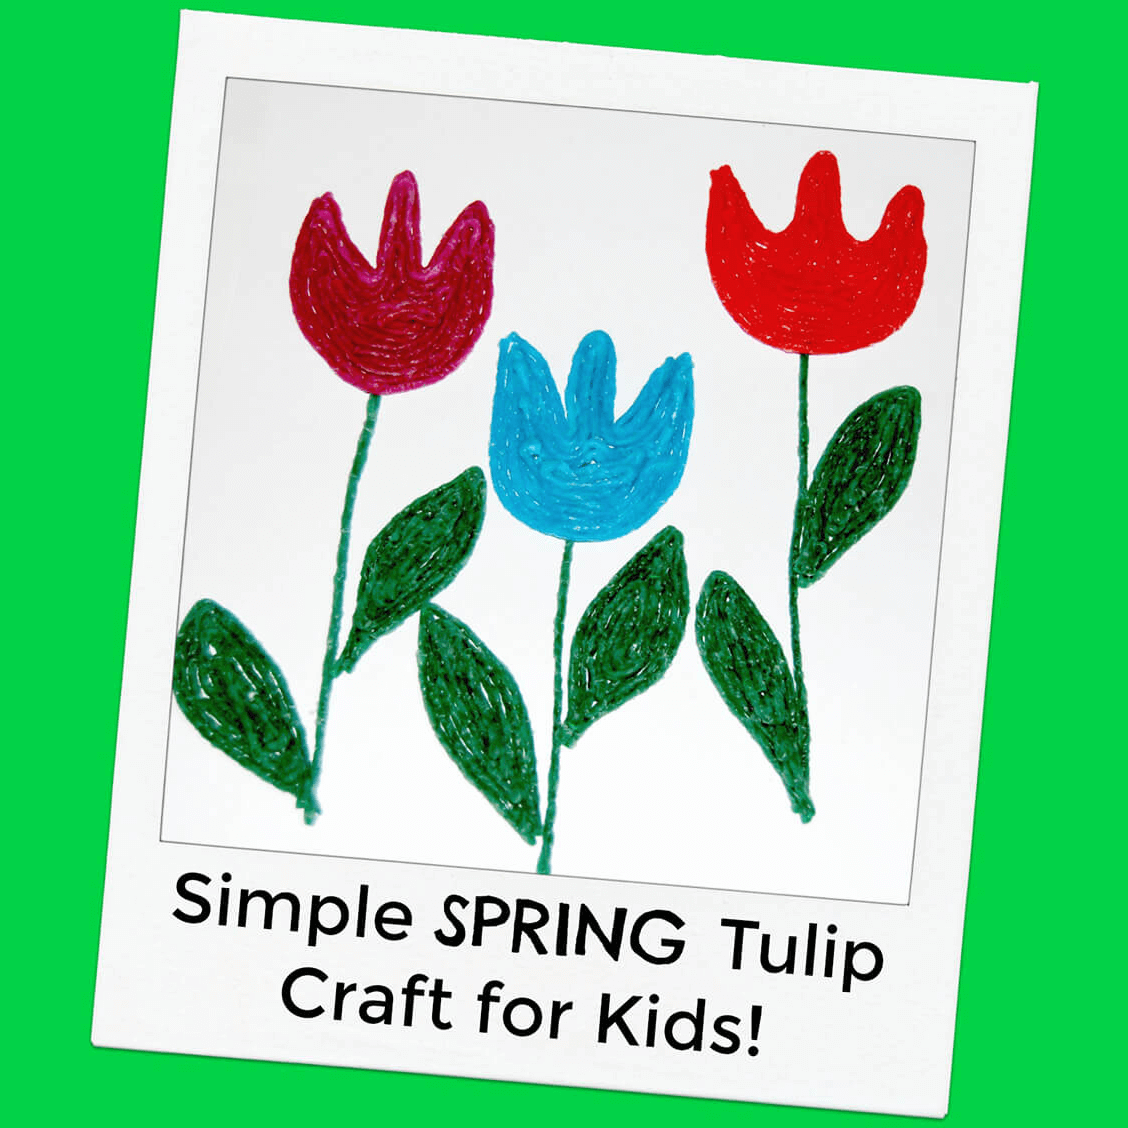 Simple Spring Tulip Crafts for Kids